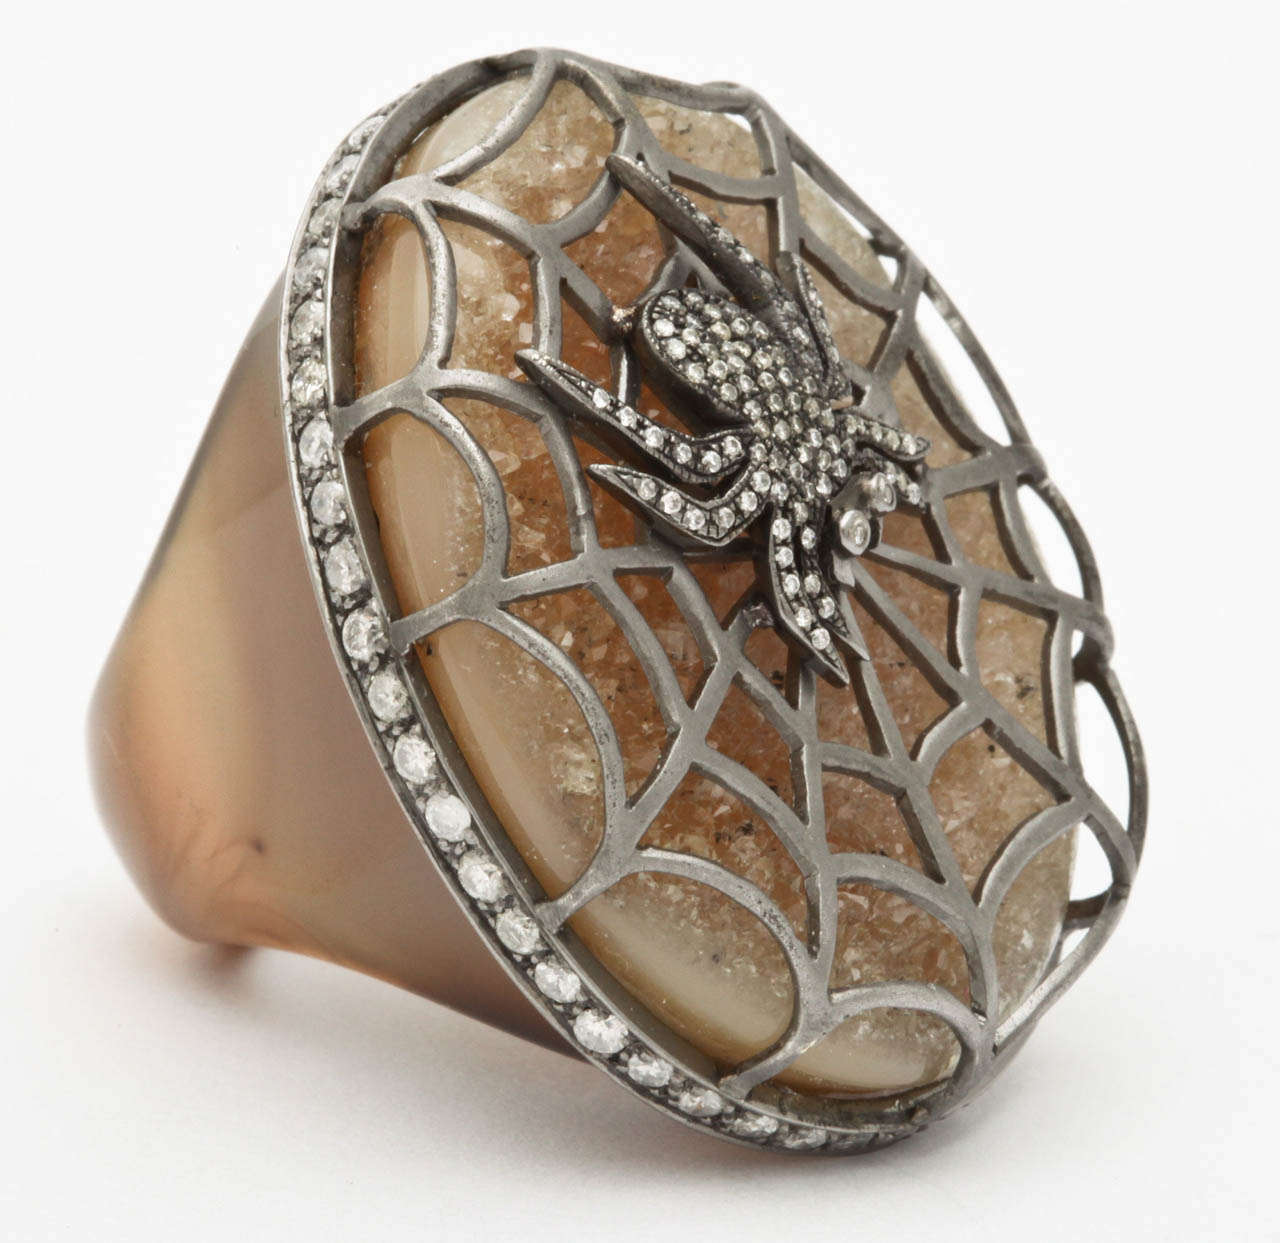 Agate Diamond Silver Spider Ring 3